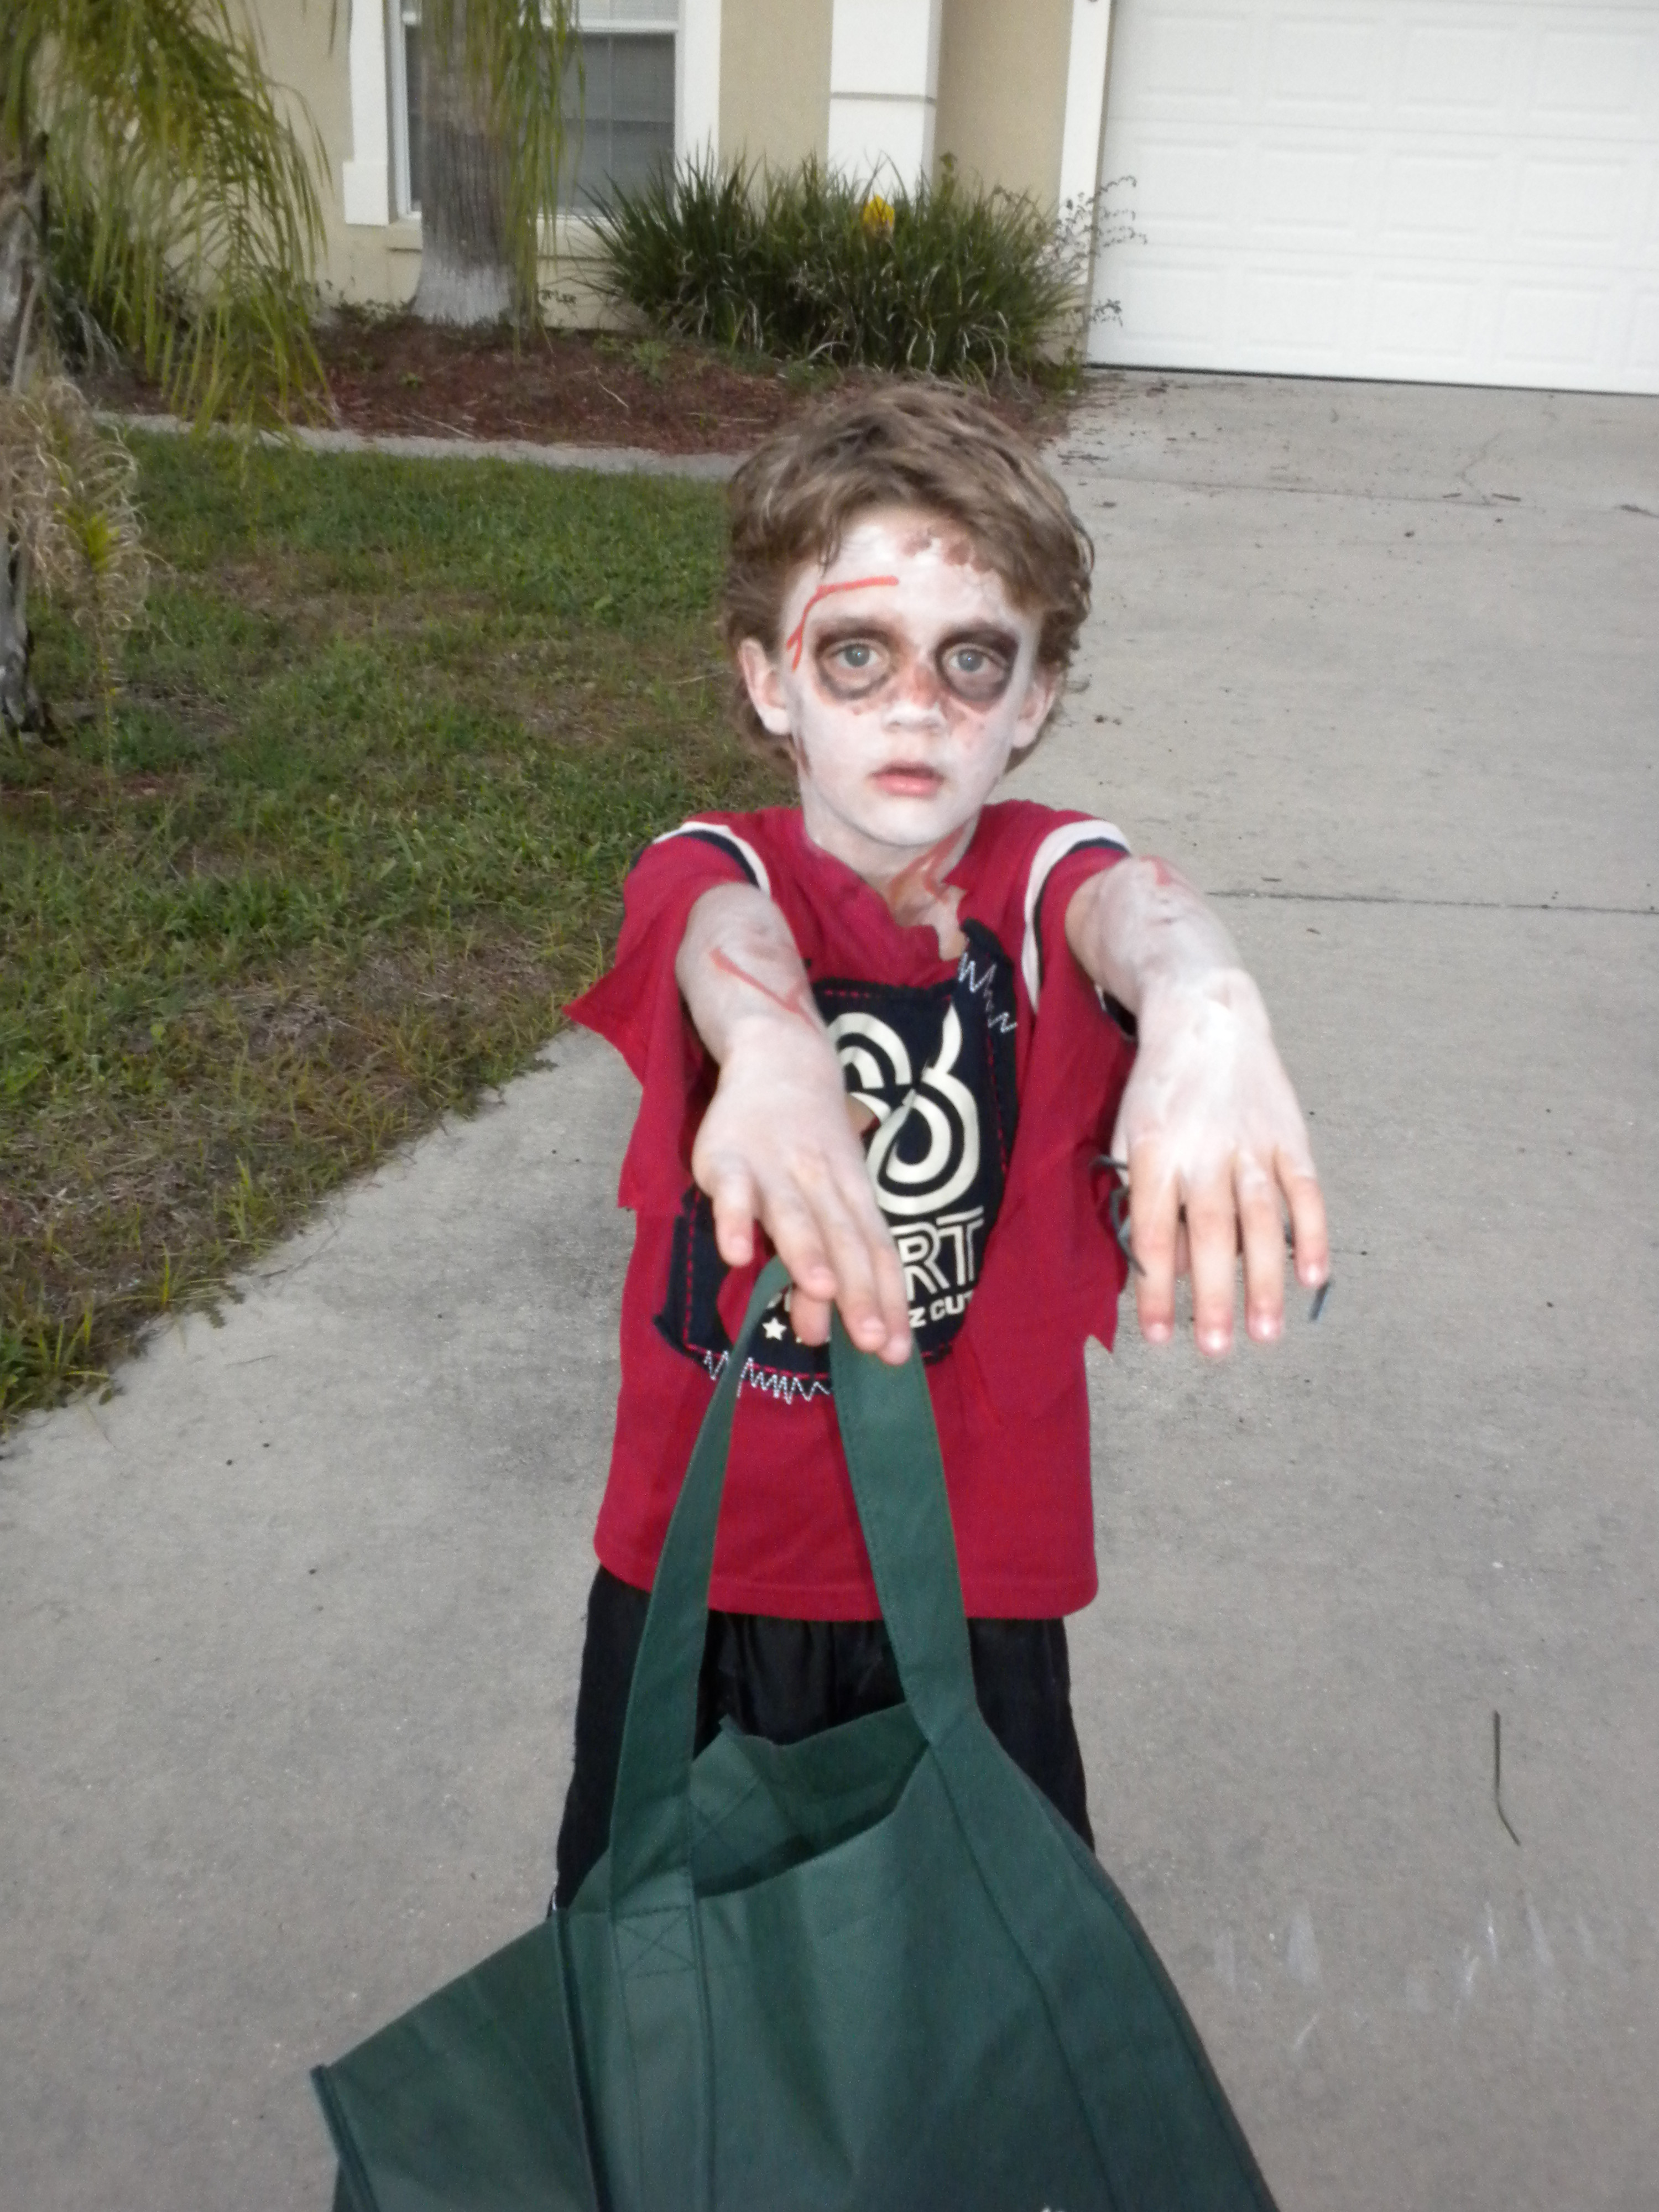 Best ideas about DIY Kids Zombie Costumes . Save or Pin 301 Moved Permanently Now.